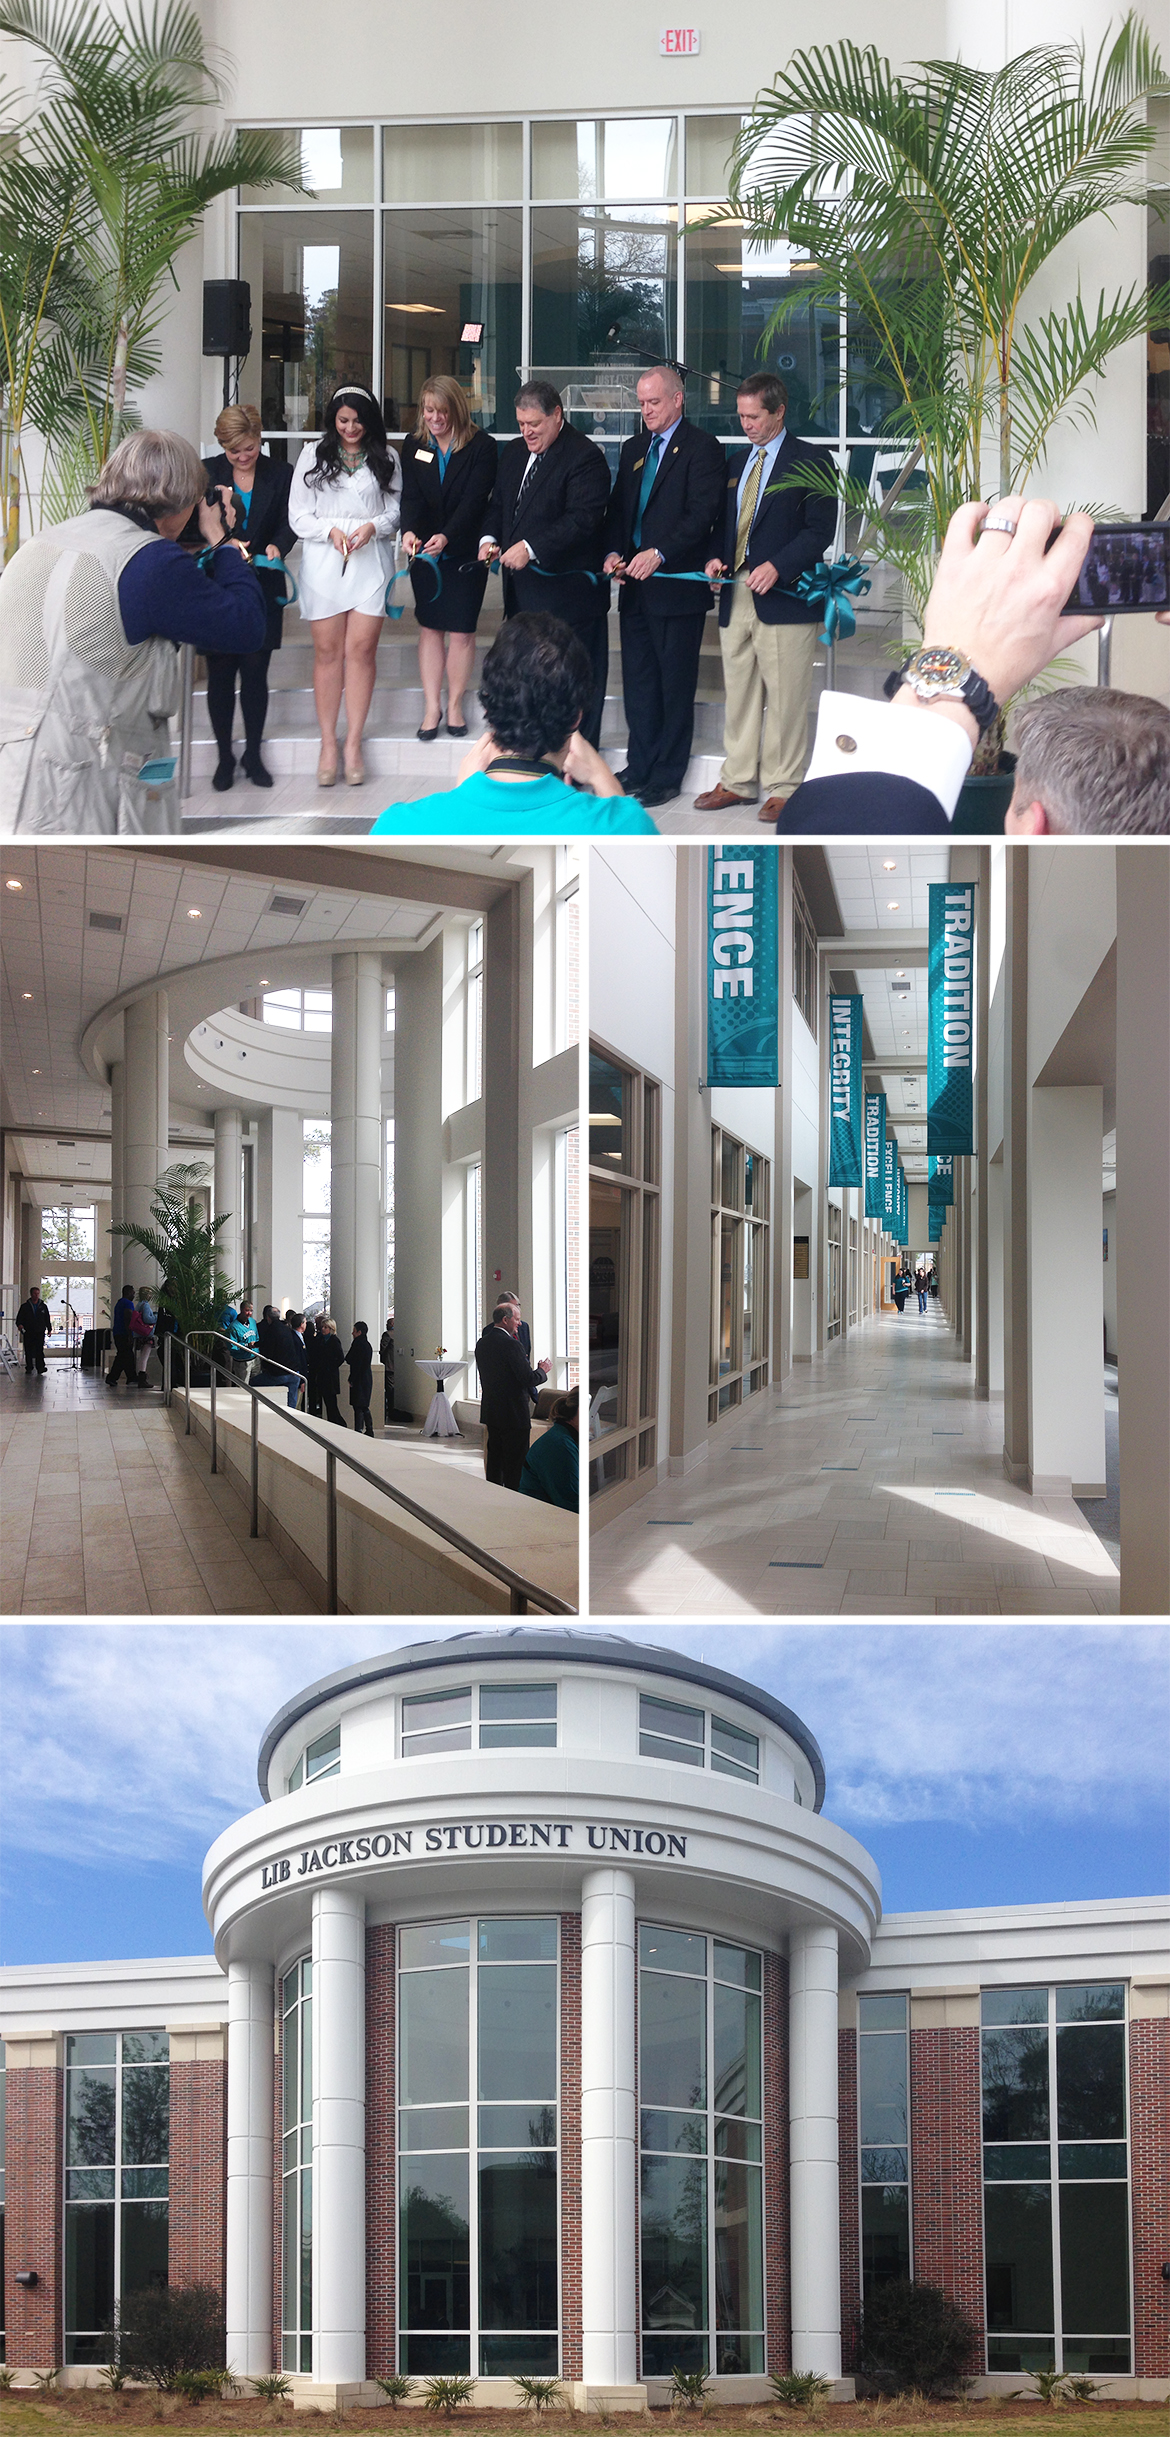 CCU Lib Jackson Student Center Dedication